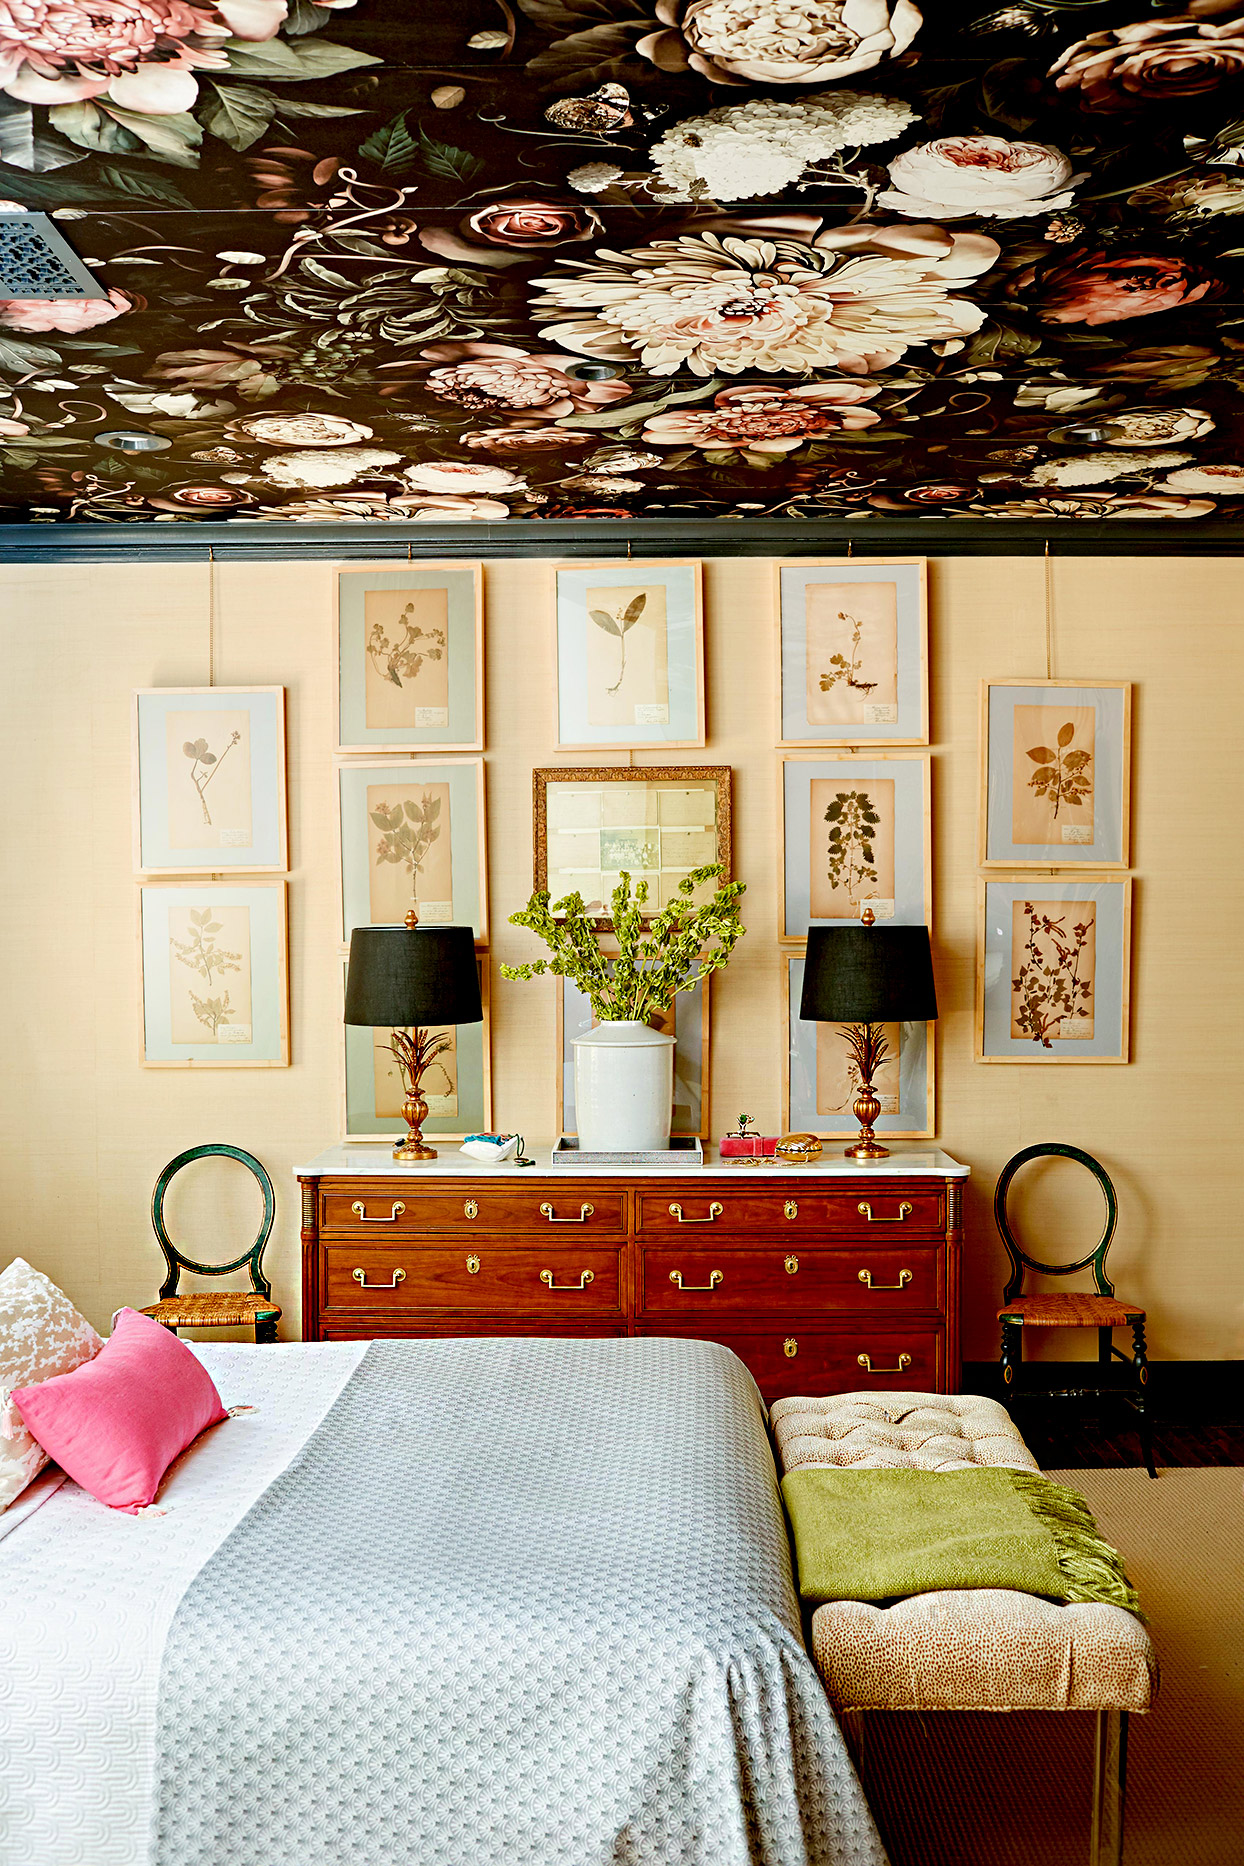 Bedroom with floral ceiling